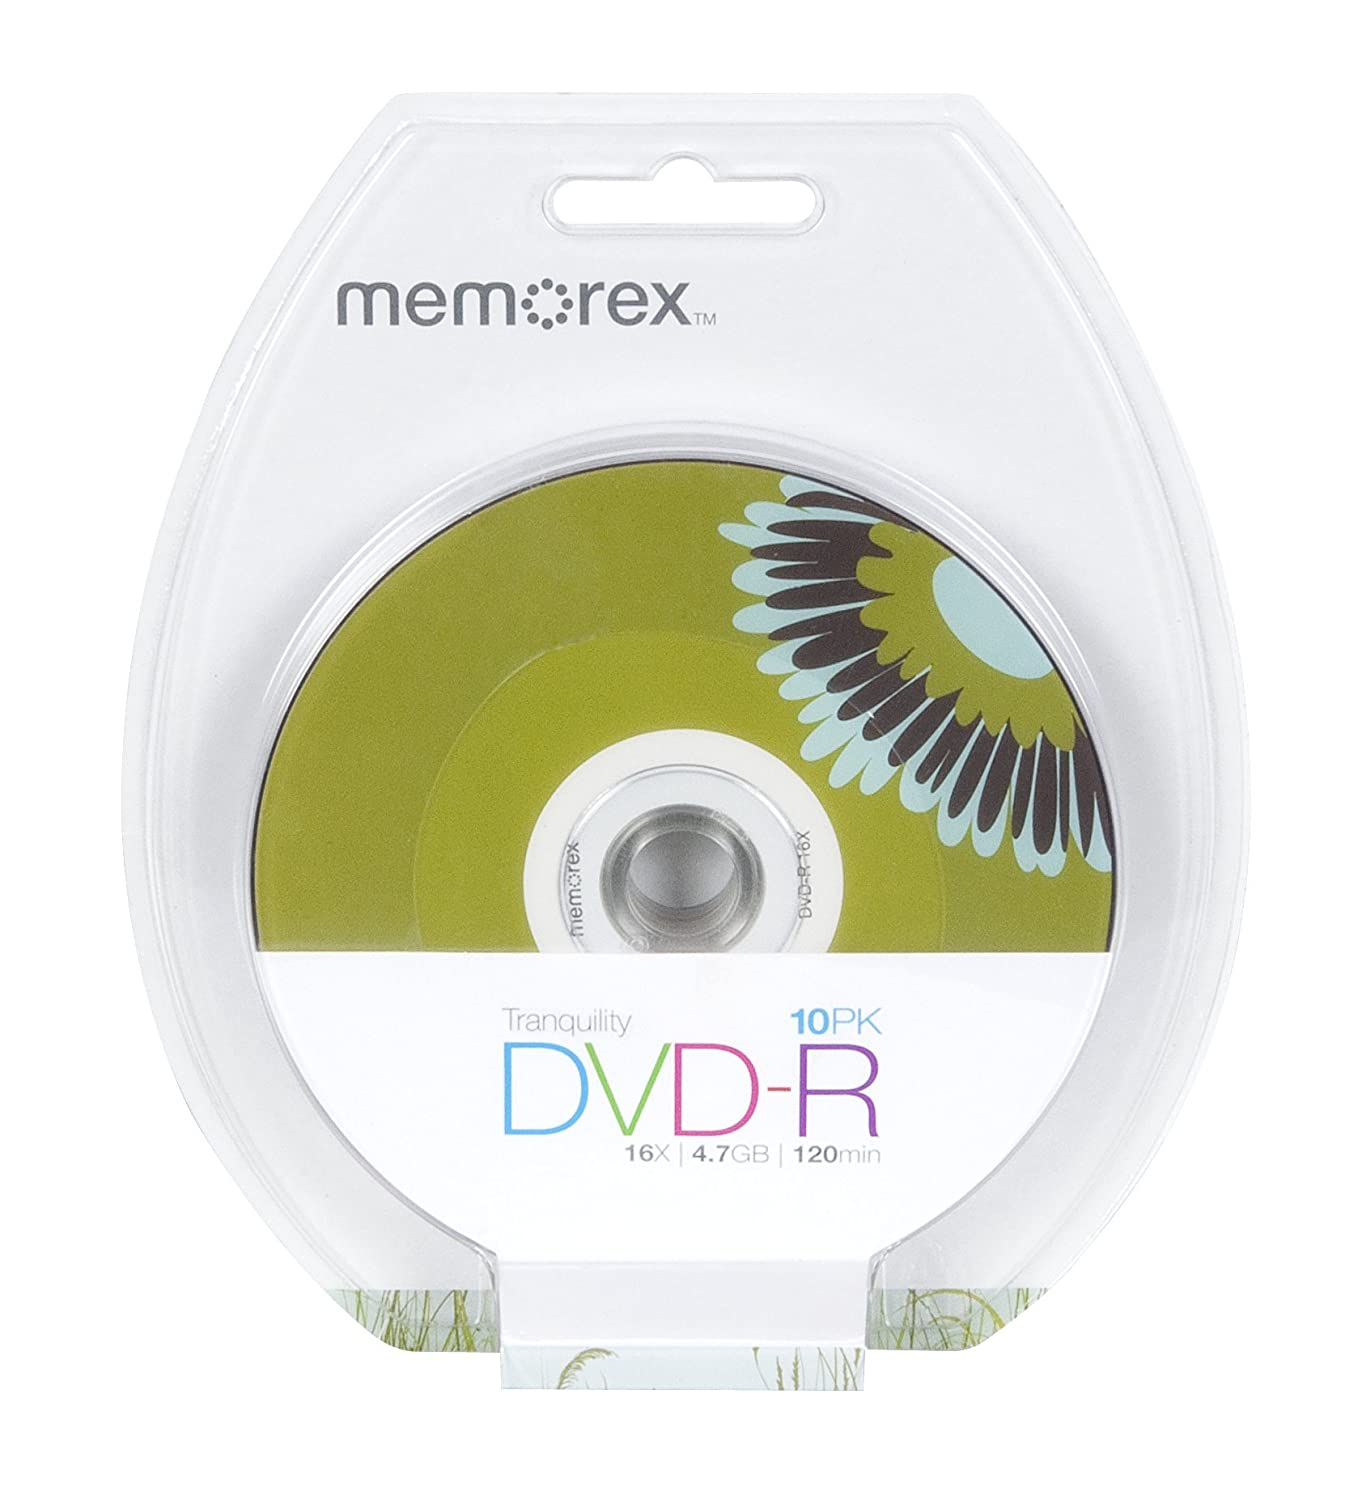 Memorex 47gb 16x Dvd R 50 Pack Spindle Home Sony Bulk Audio Theater